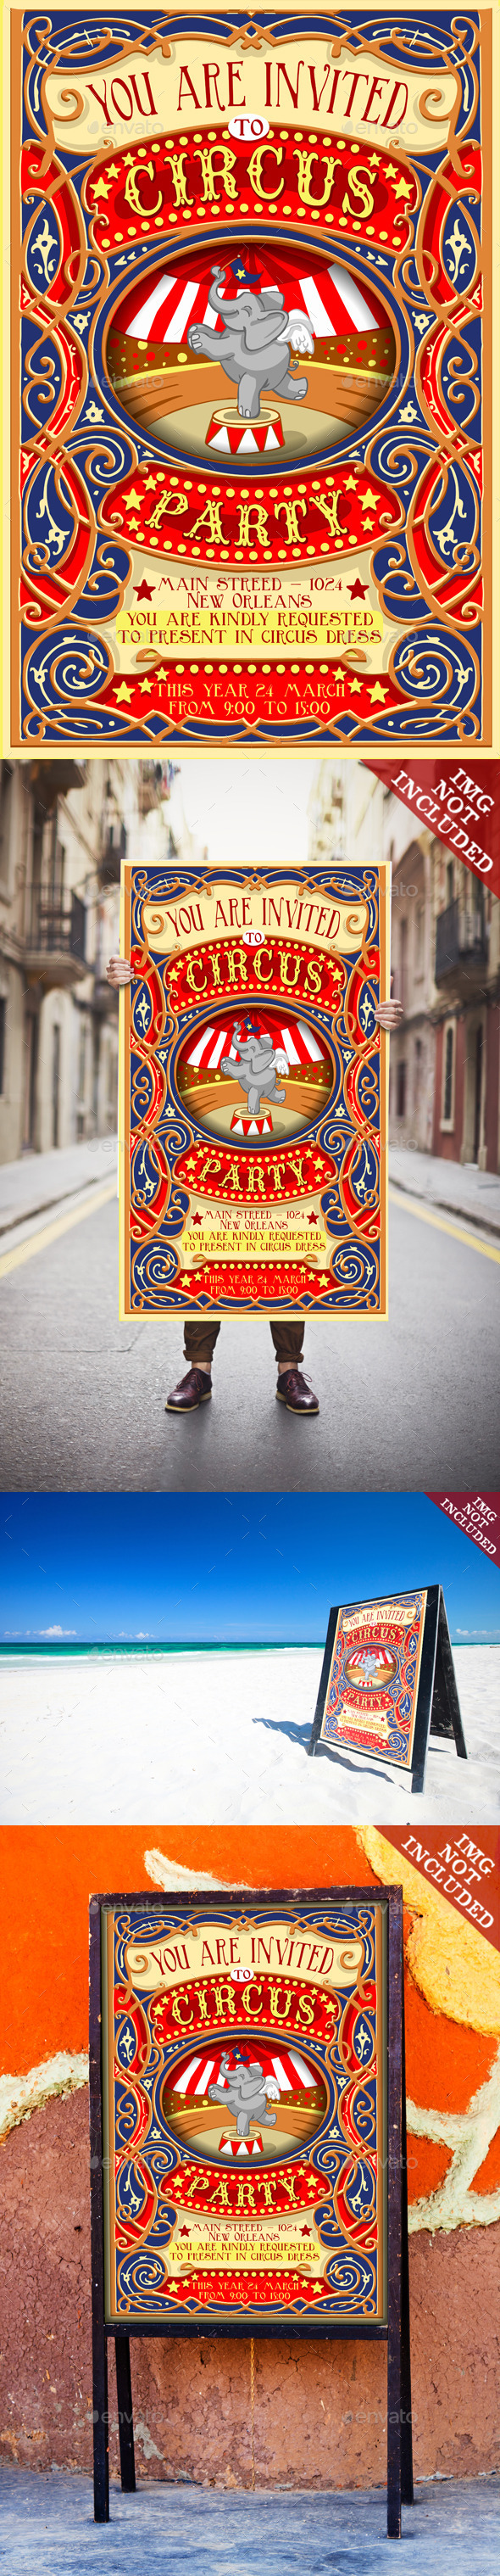 Poster Invite for Circus Party with Elephant - Retro Technology